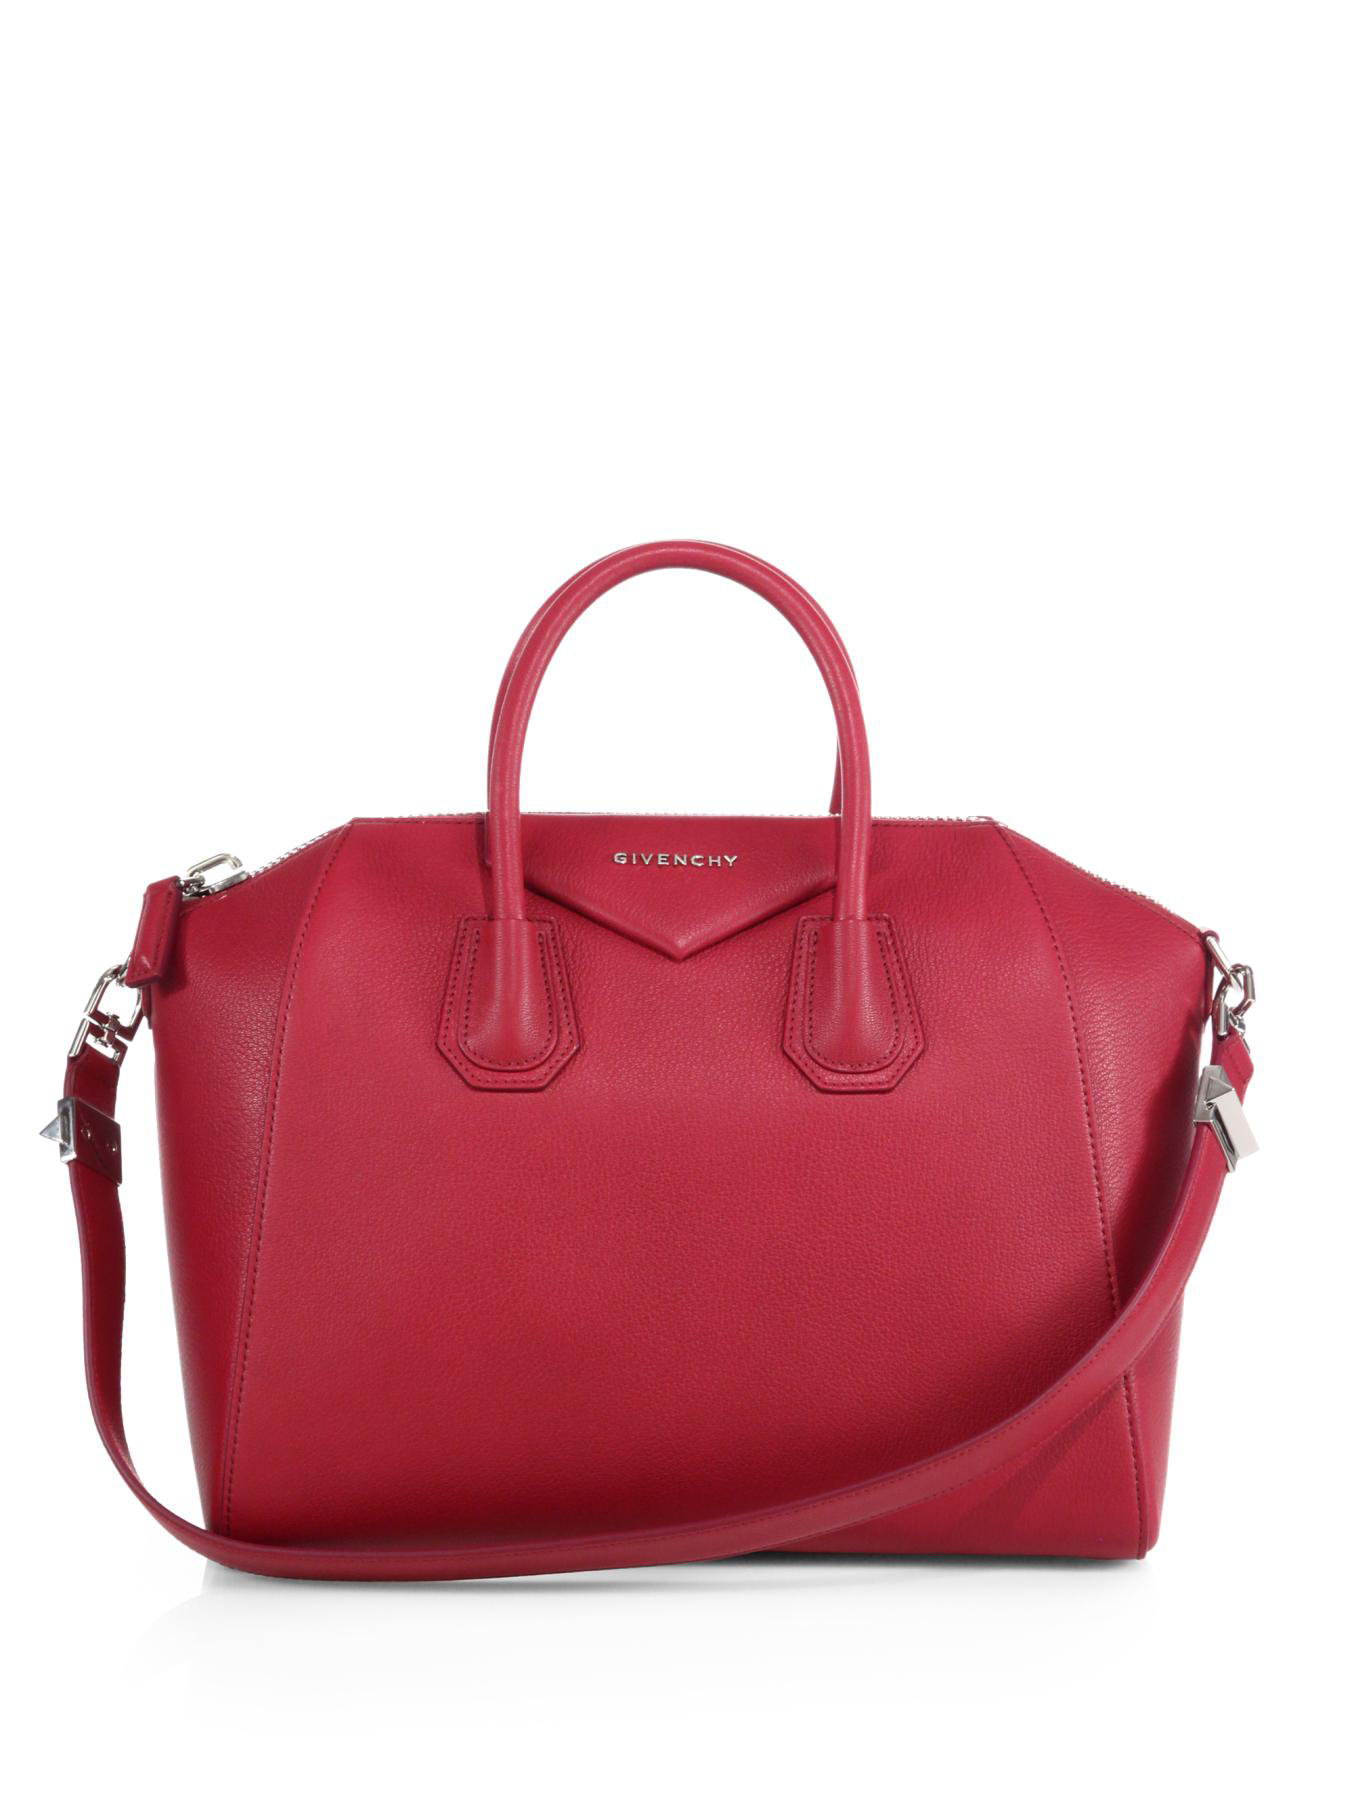 85114fae8a64 ... Lyst - Givenchy Antigona Medium Leather Satchel in Red premium  selection 8d285 9f3bc ...